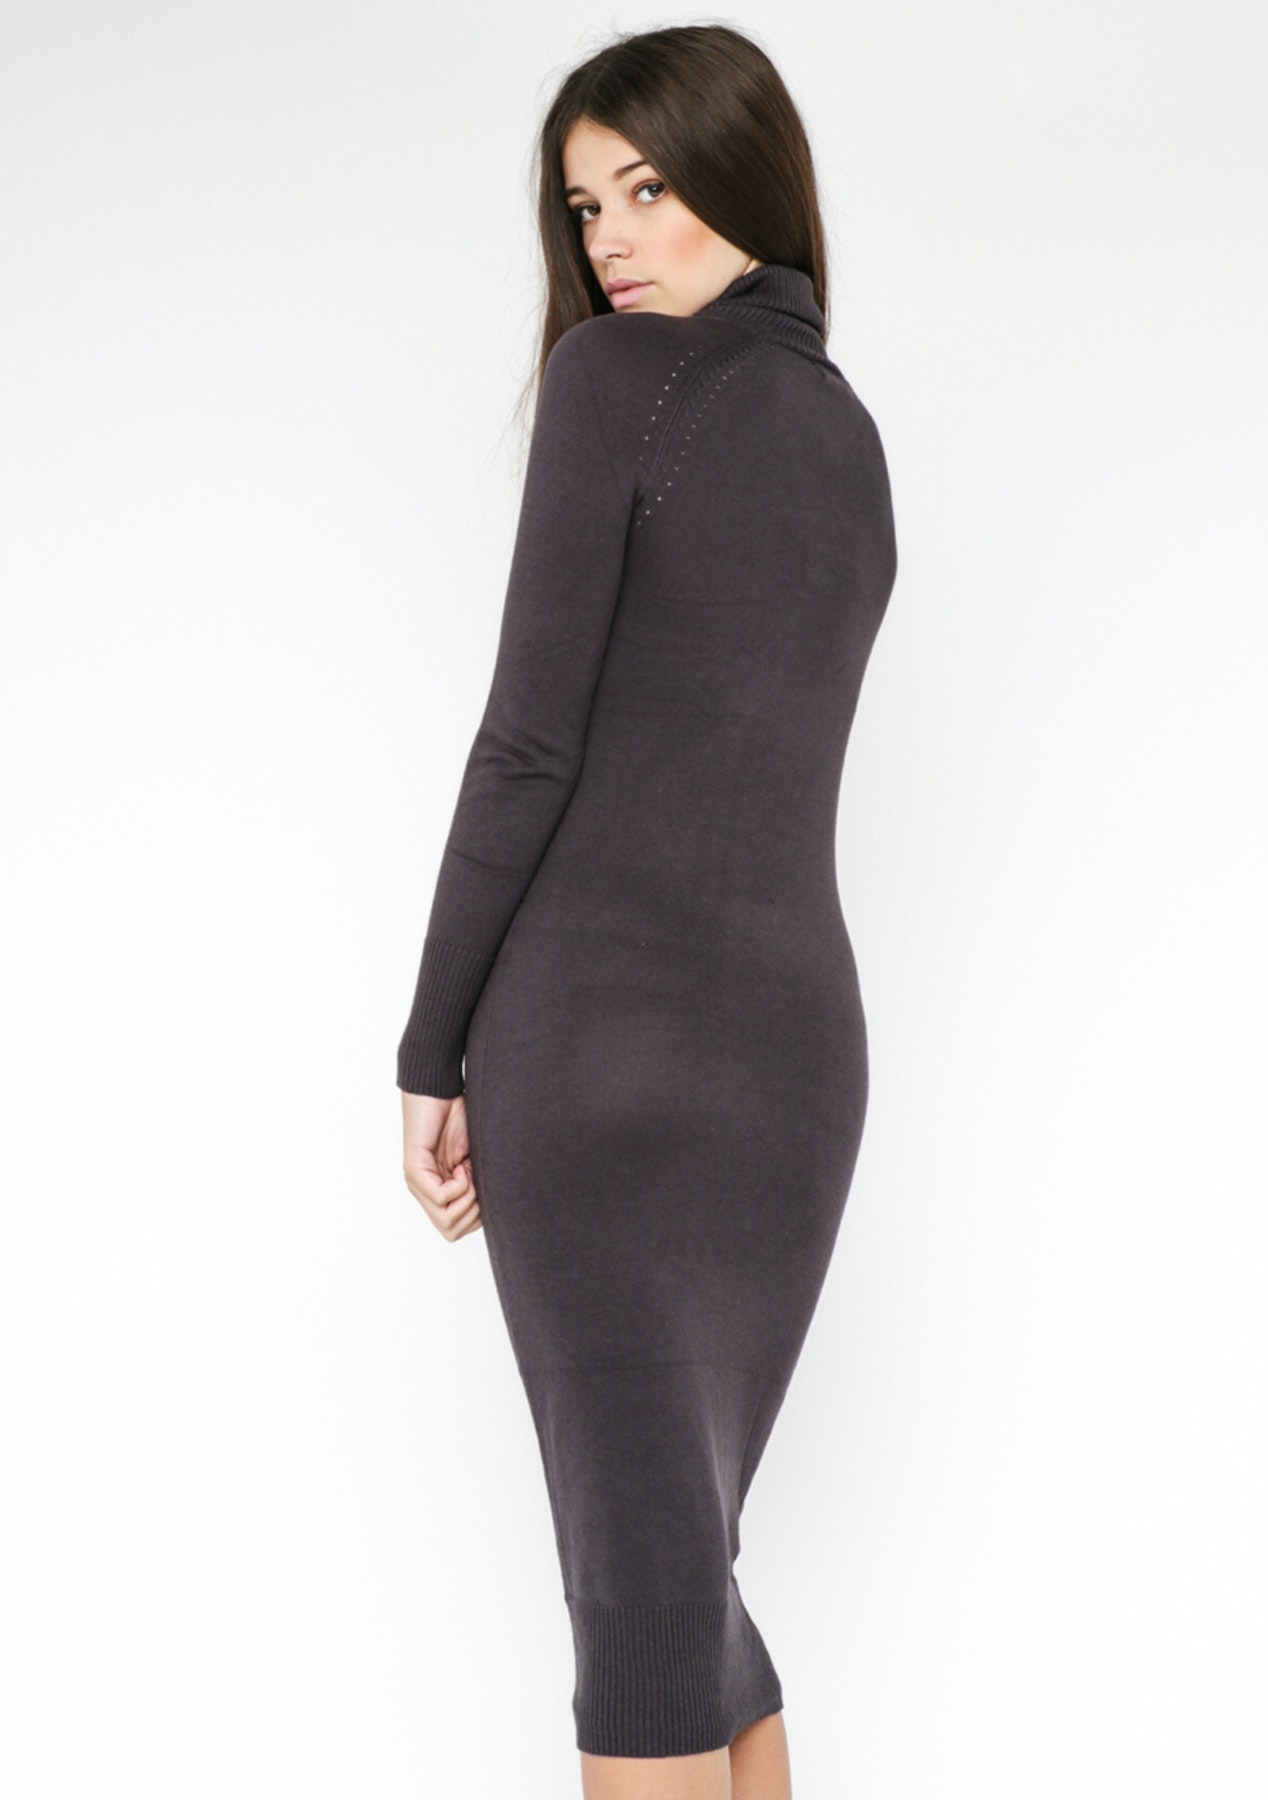 6730c45b3e Lioness Monaco Turtleneck Dress - Charcoal - Everything  25 and Under -  Onceit